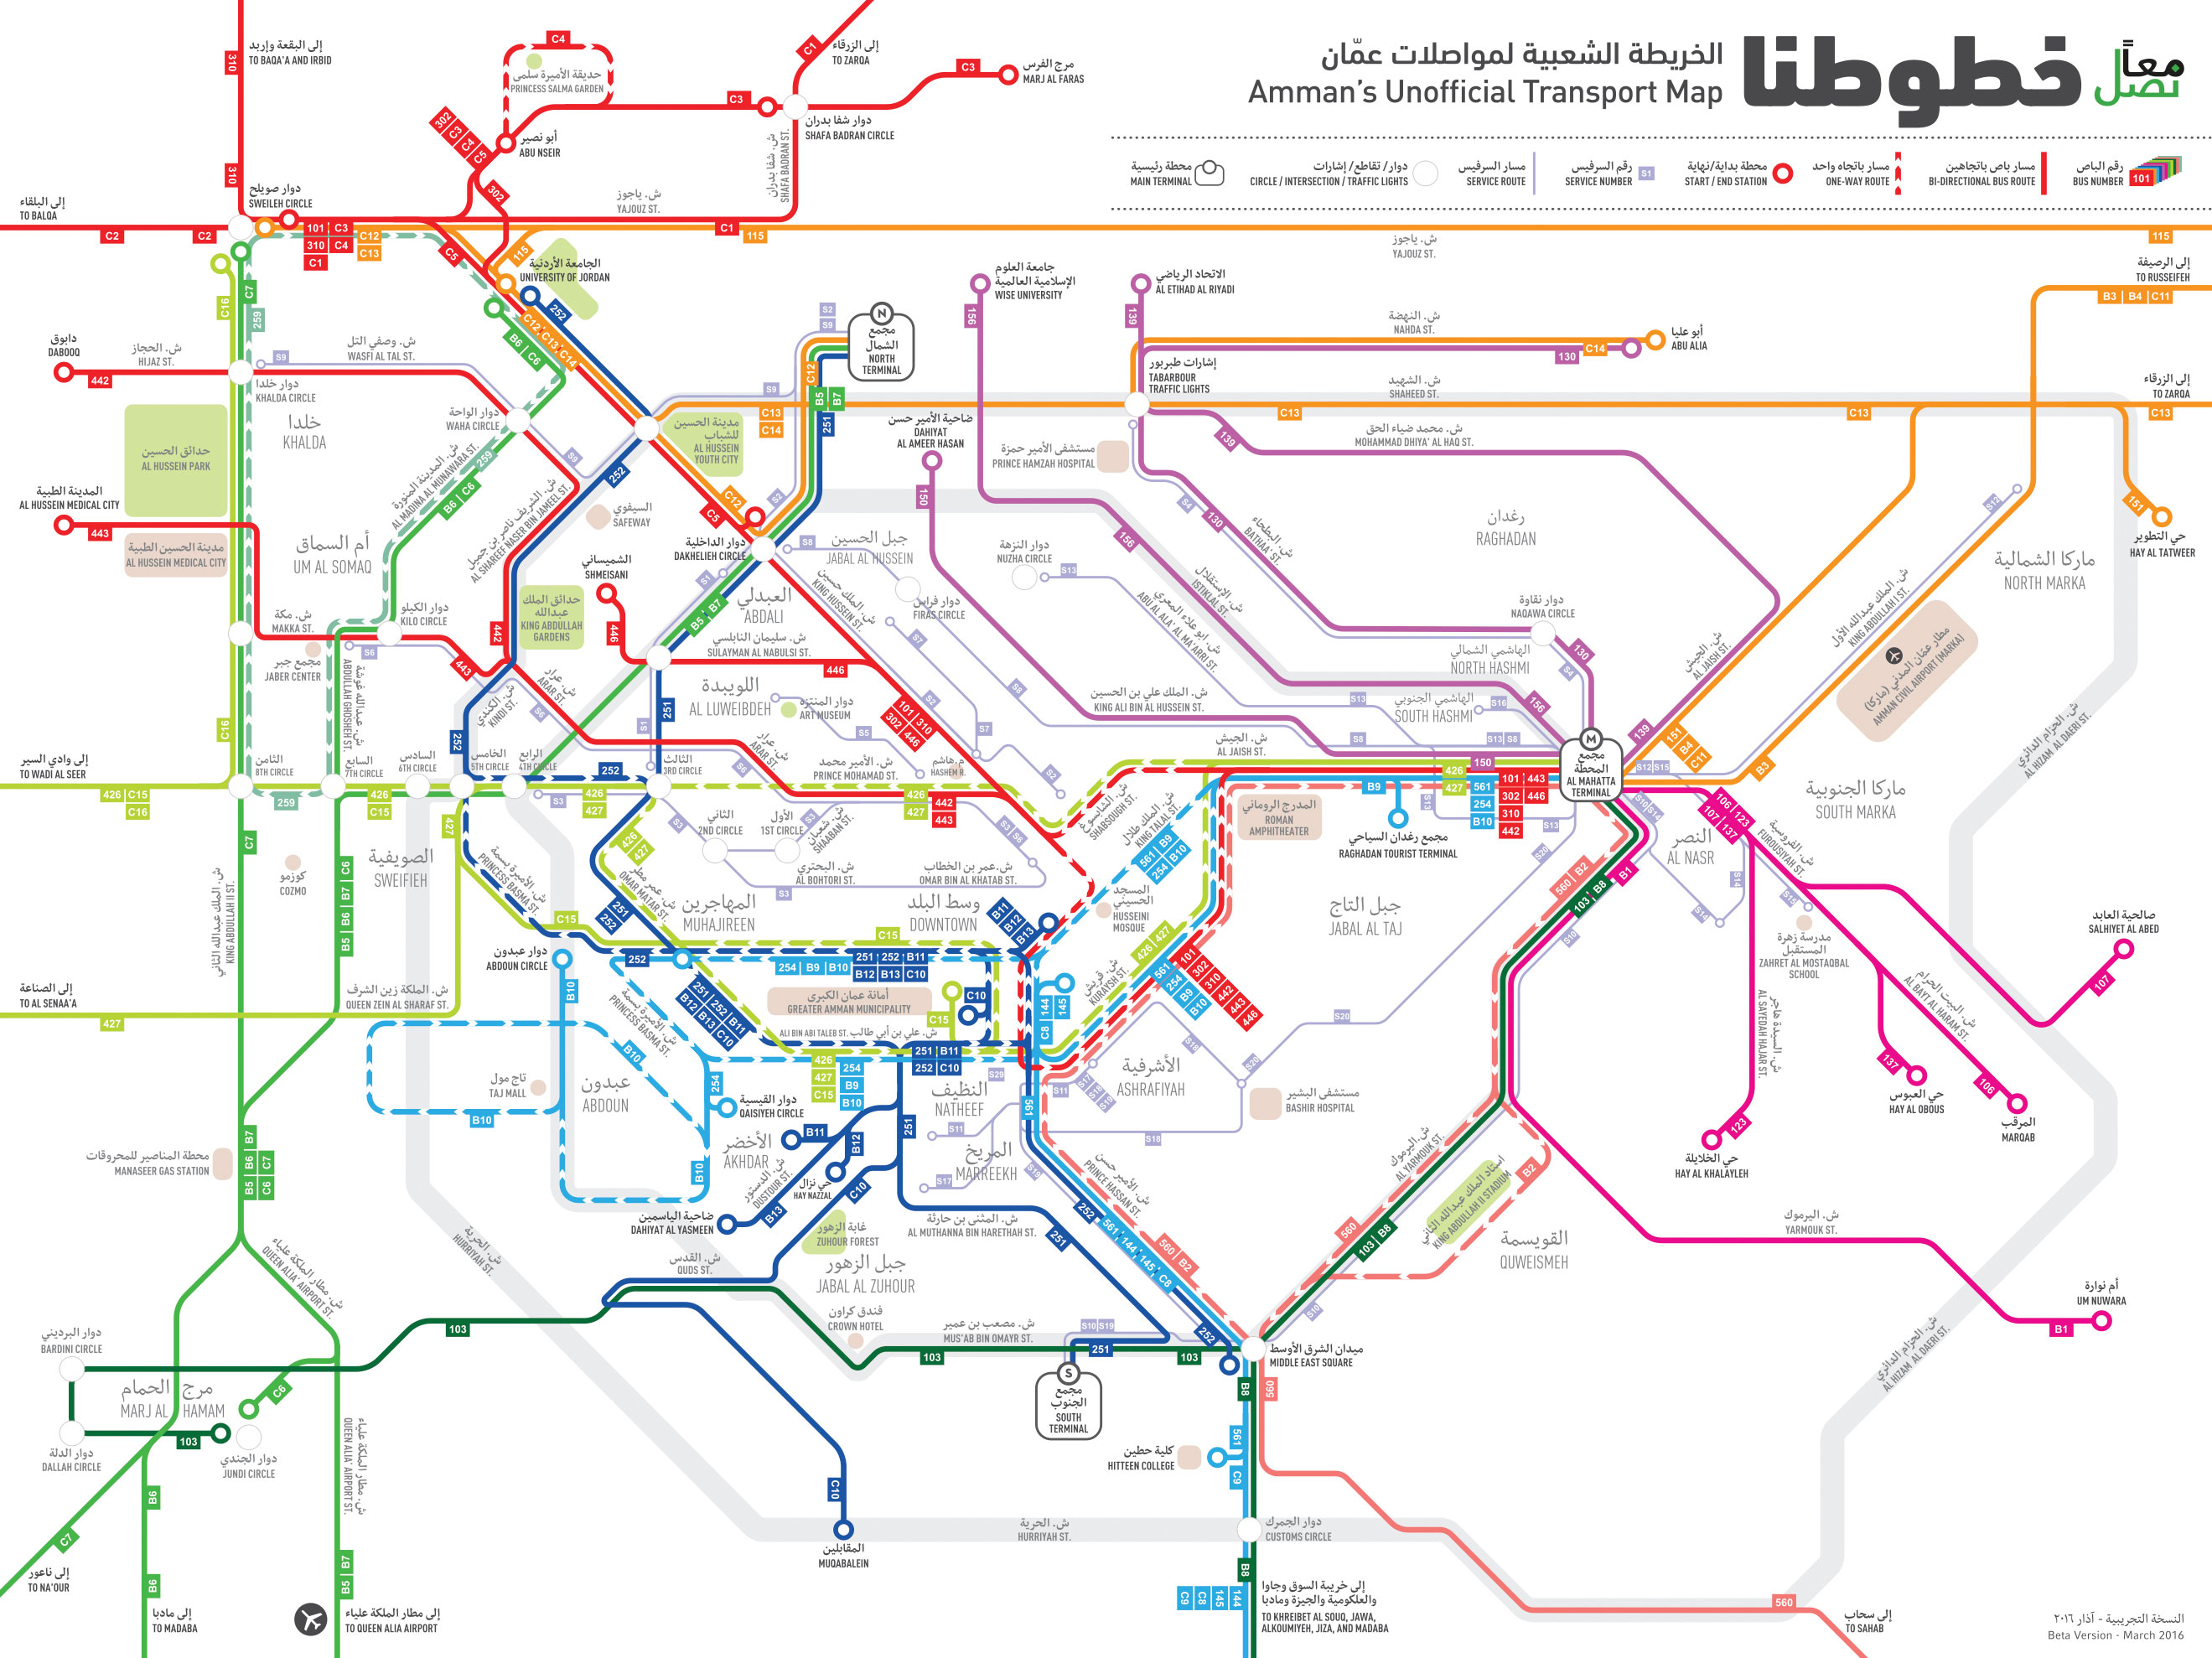 Ma'an Nasel's recently released public transportation map for Amman